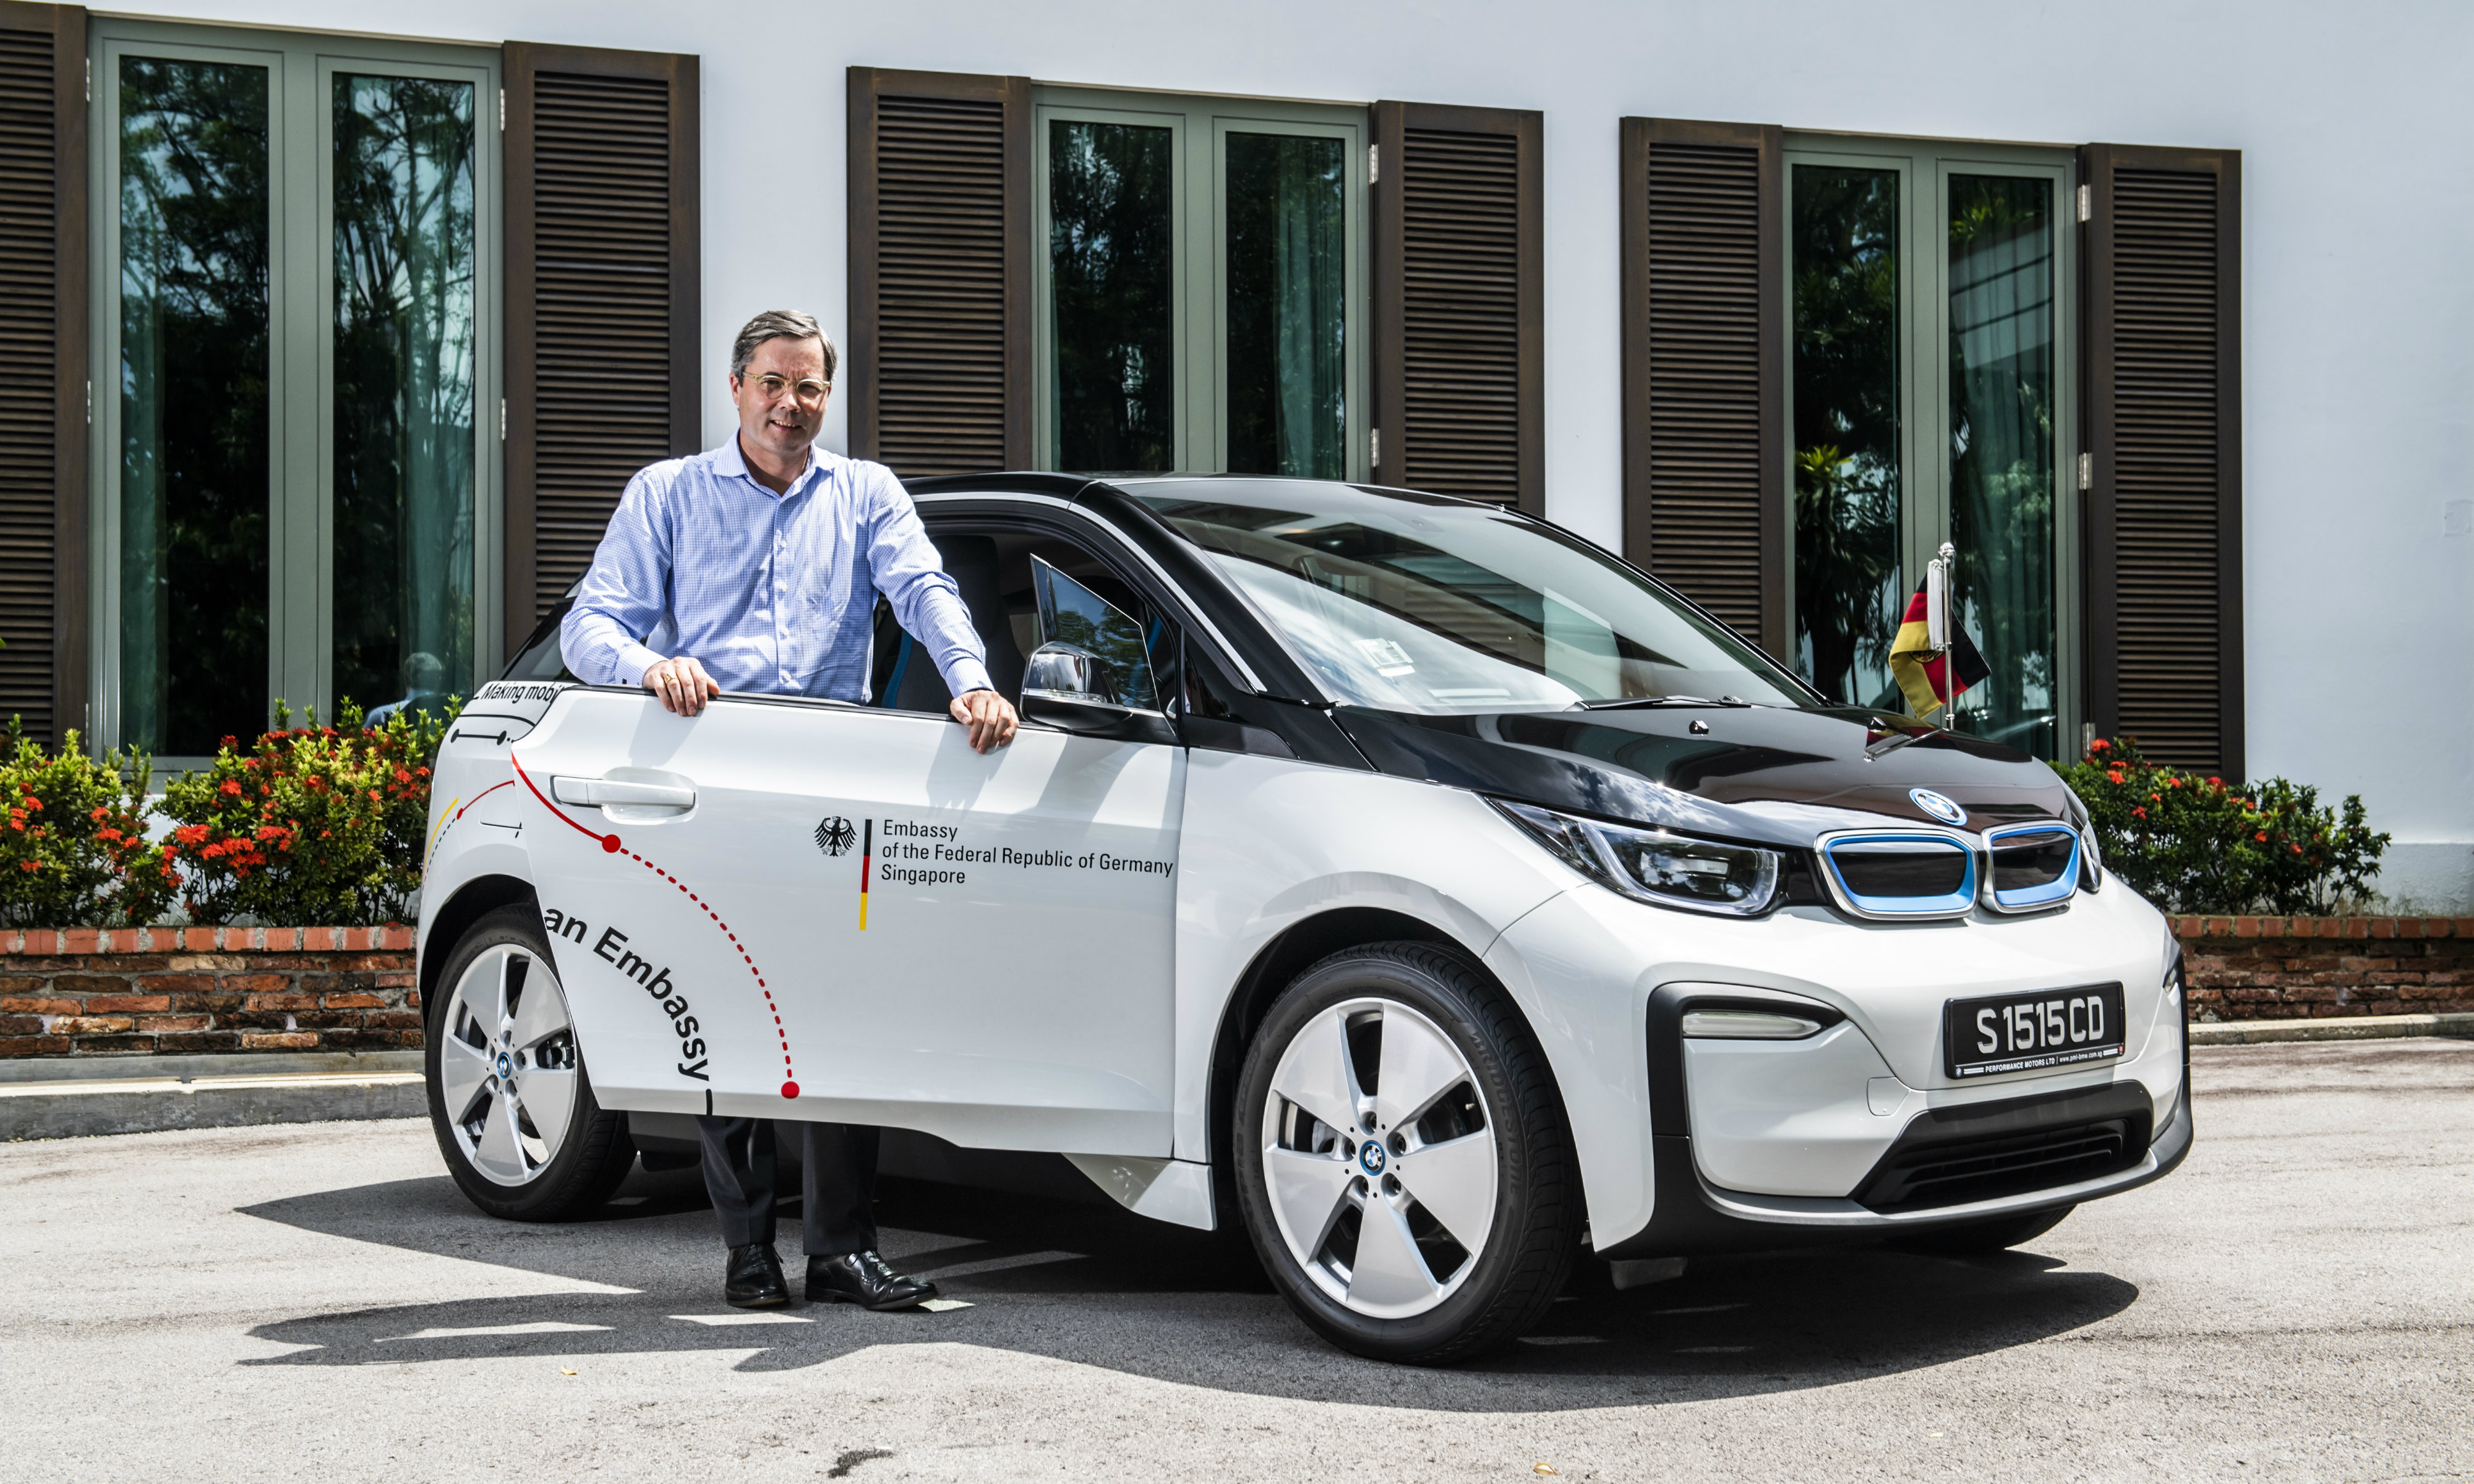 It is the first embassy in Singapore to use an electric vehicle for the ambassador's official duties.